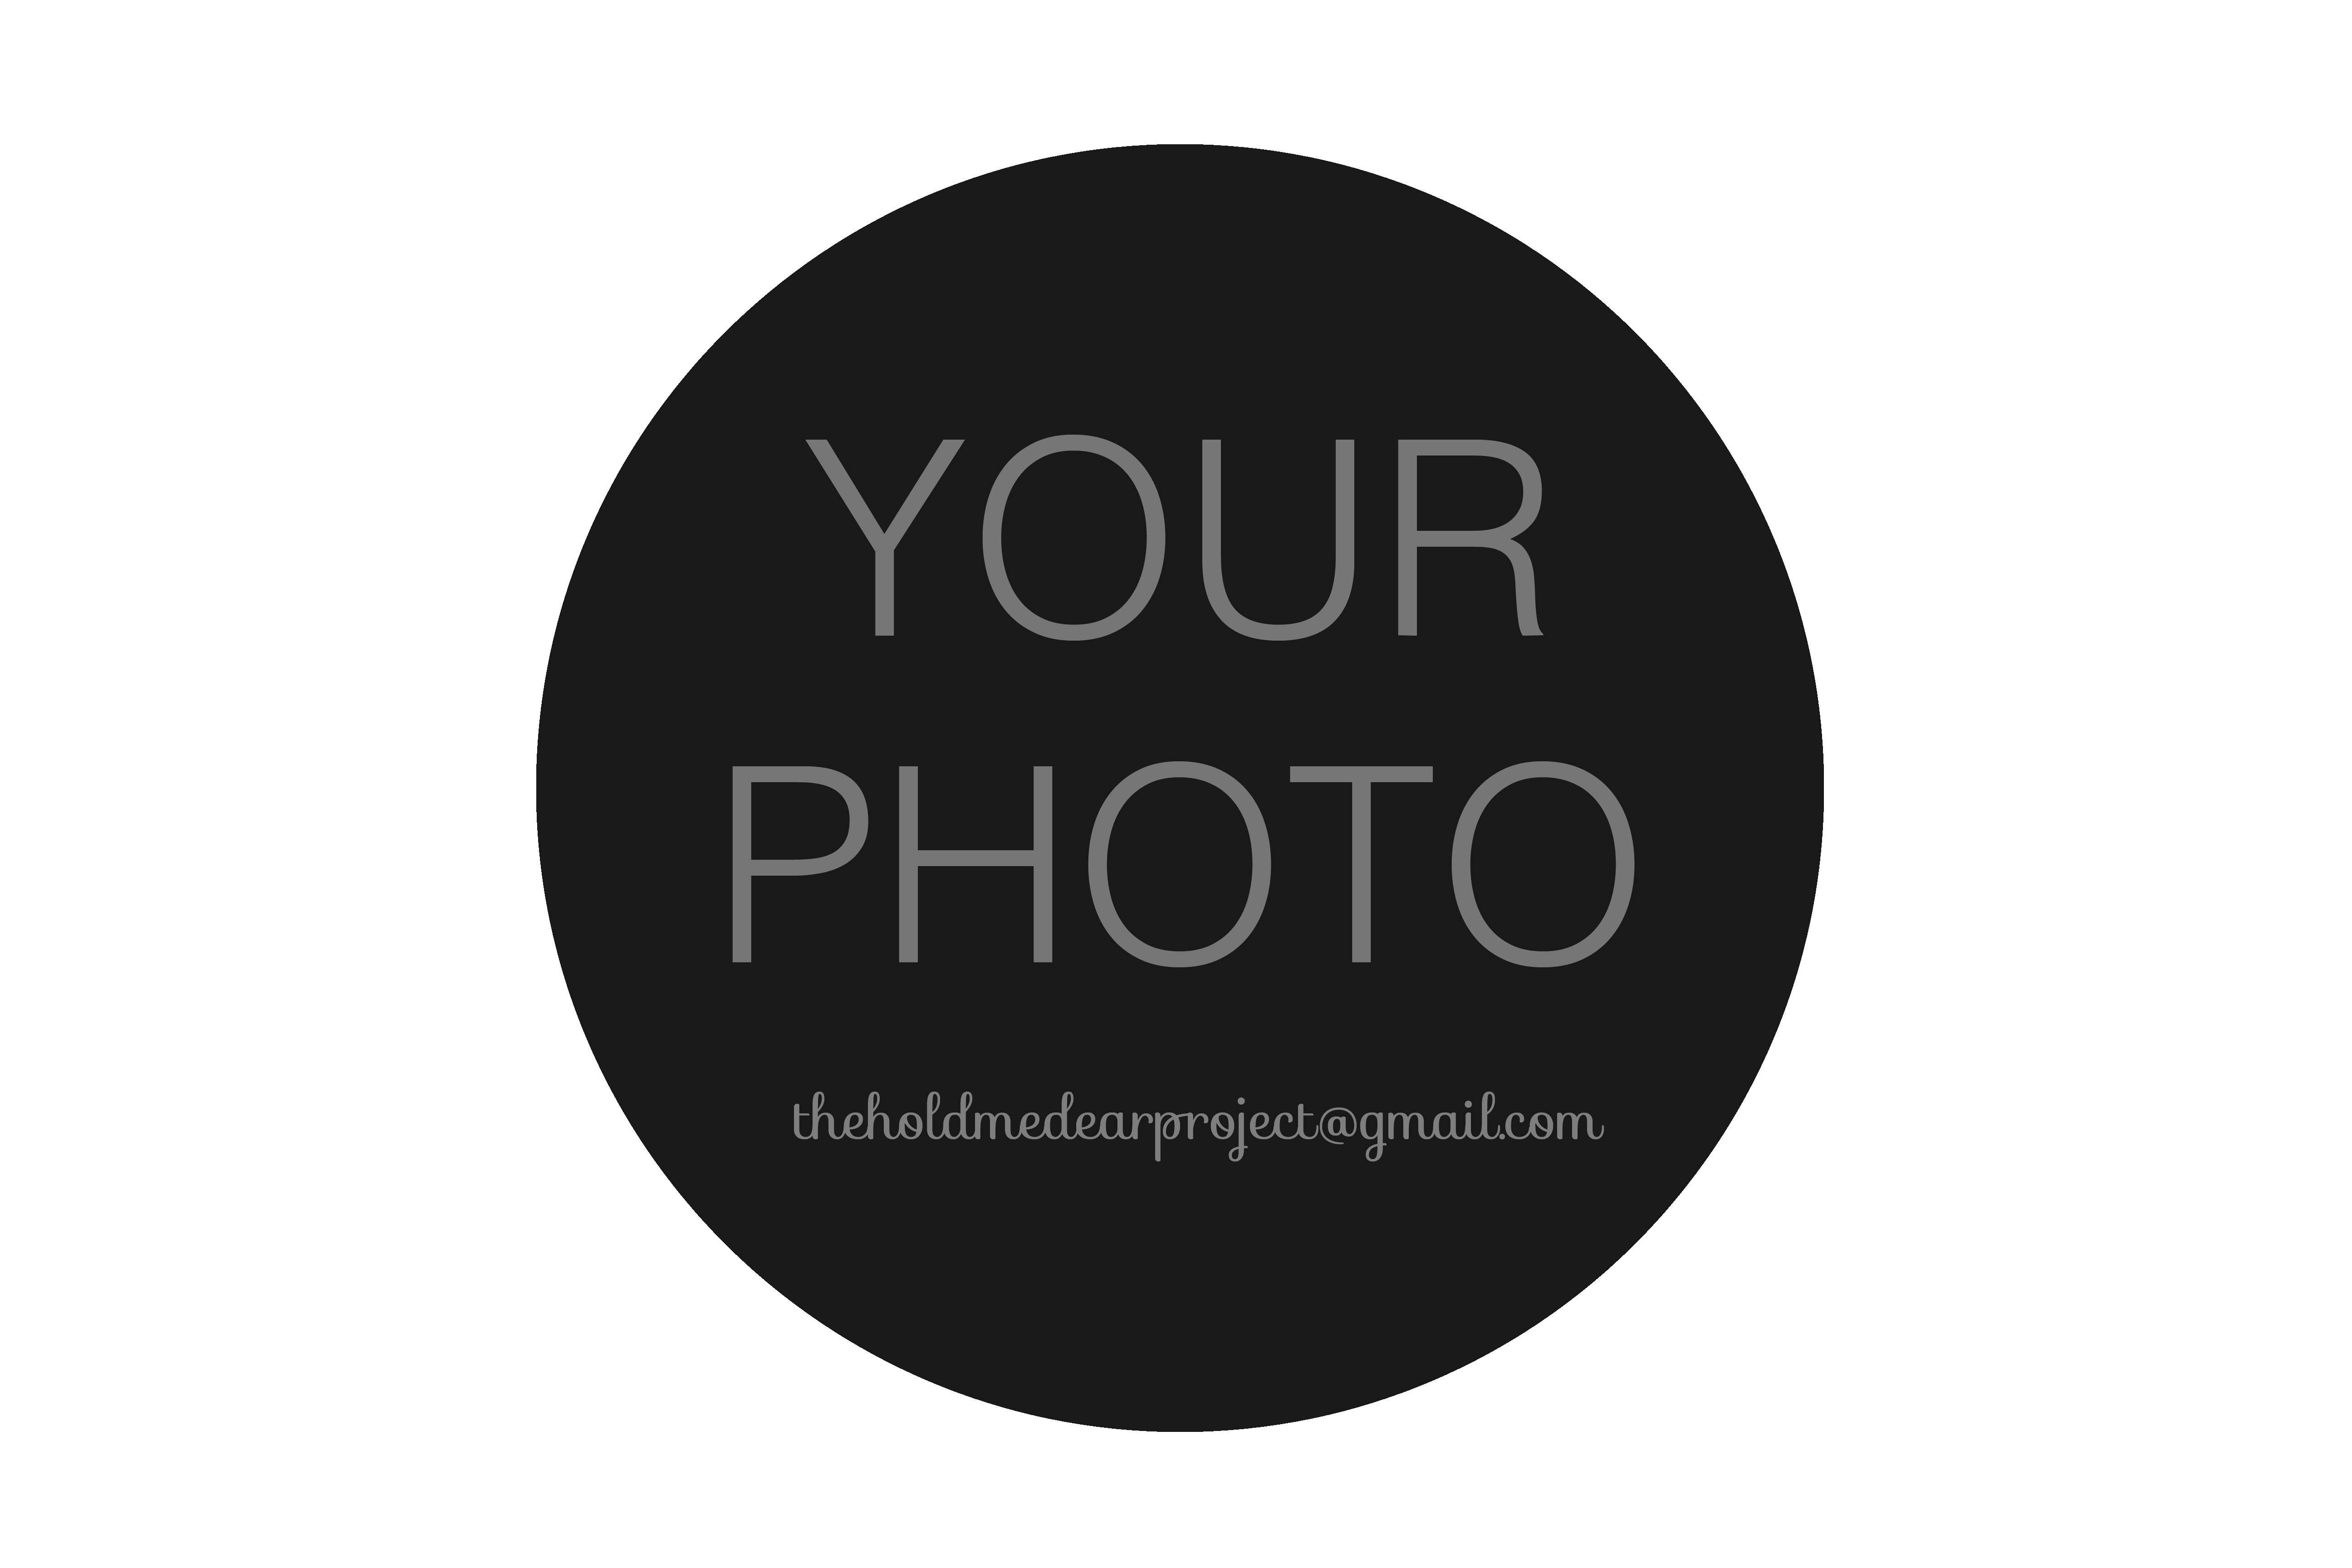 Want YOUR photo in the gallery?